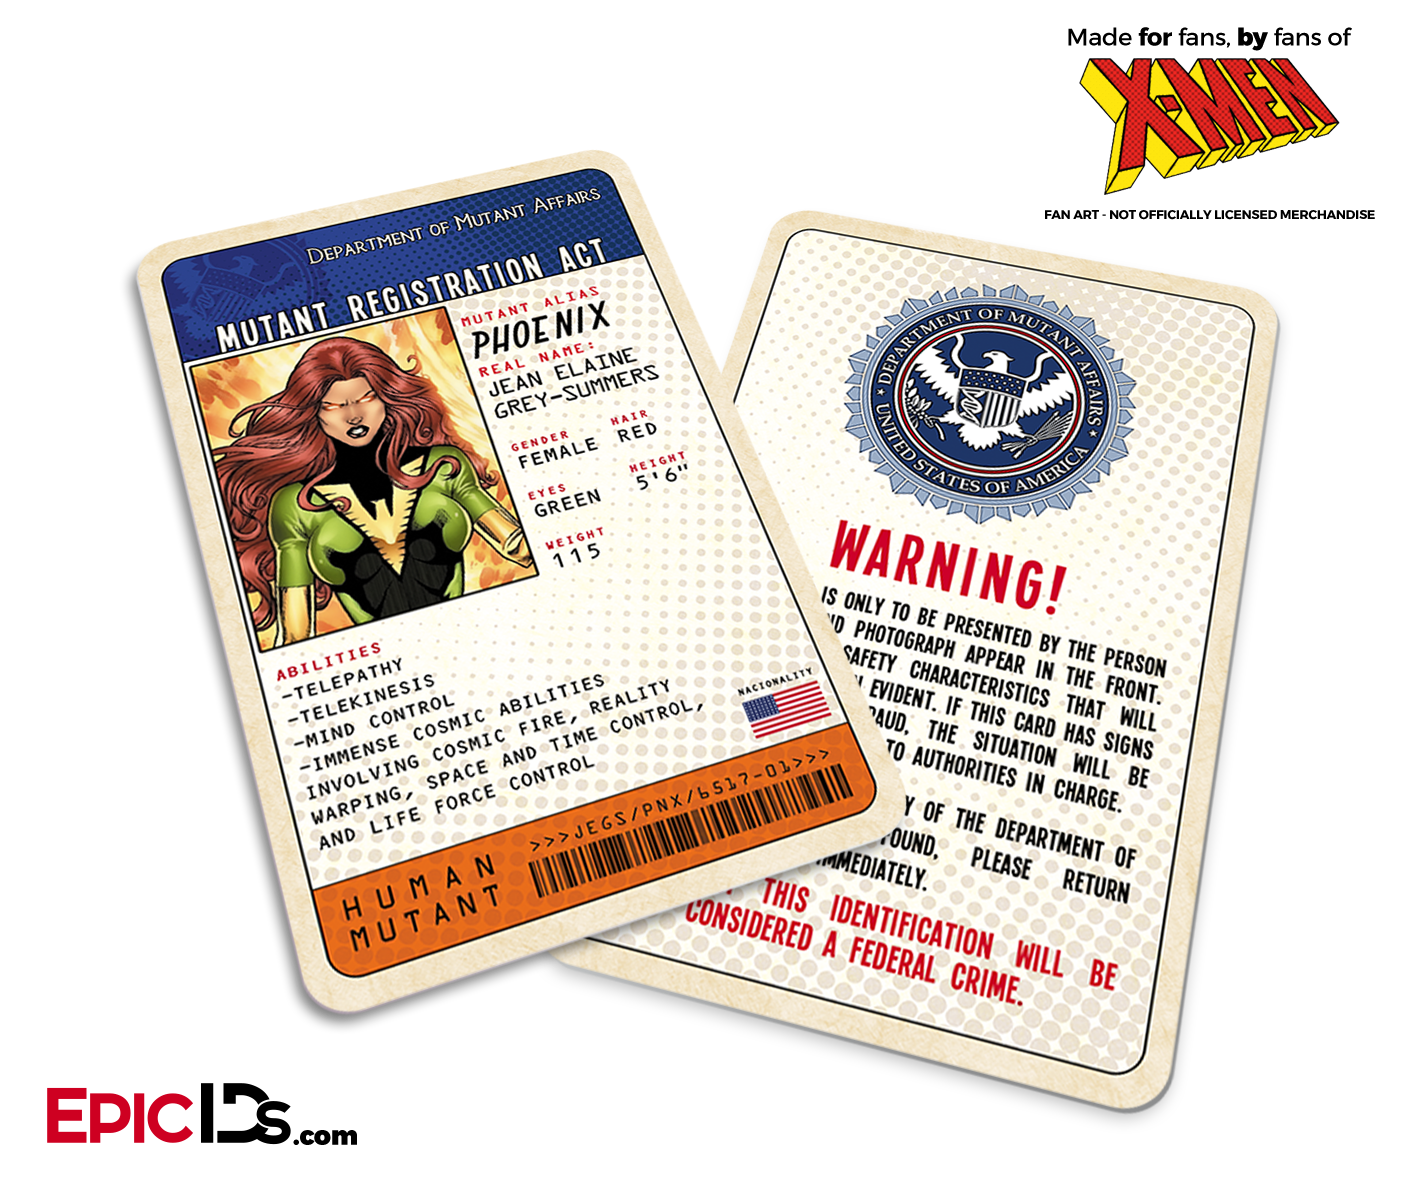 Mutant Registration Act 'X-Men' Classic Comic Identification Card - Jean  Grey / Phoenix